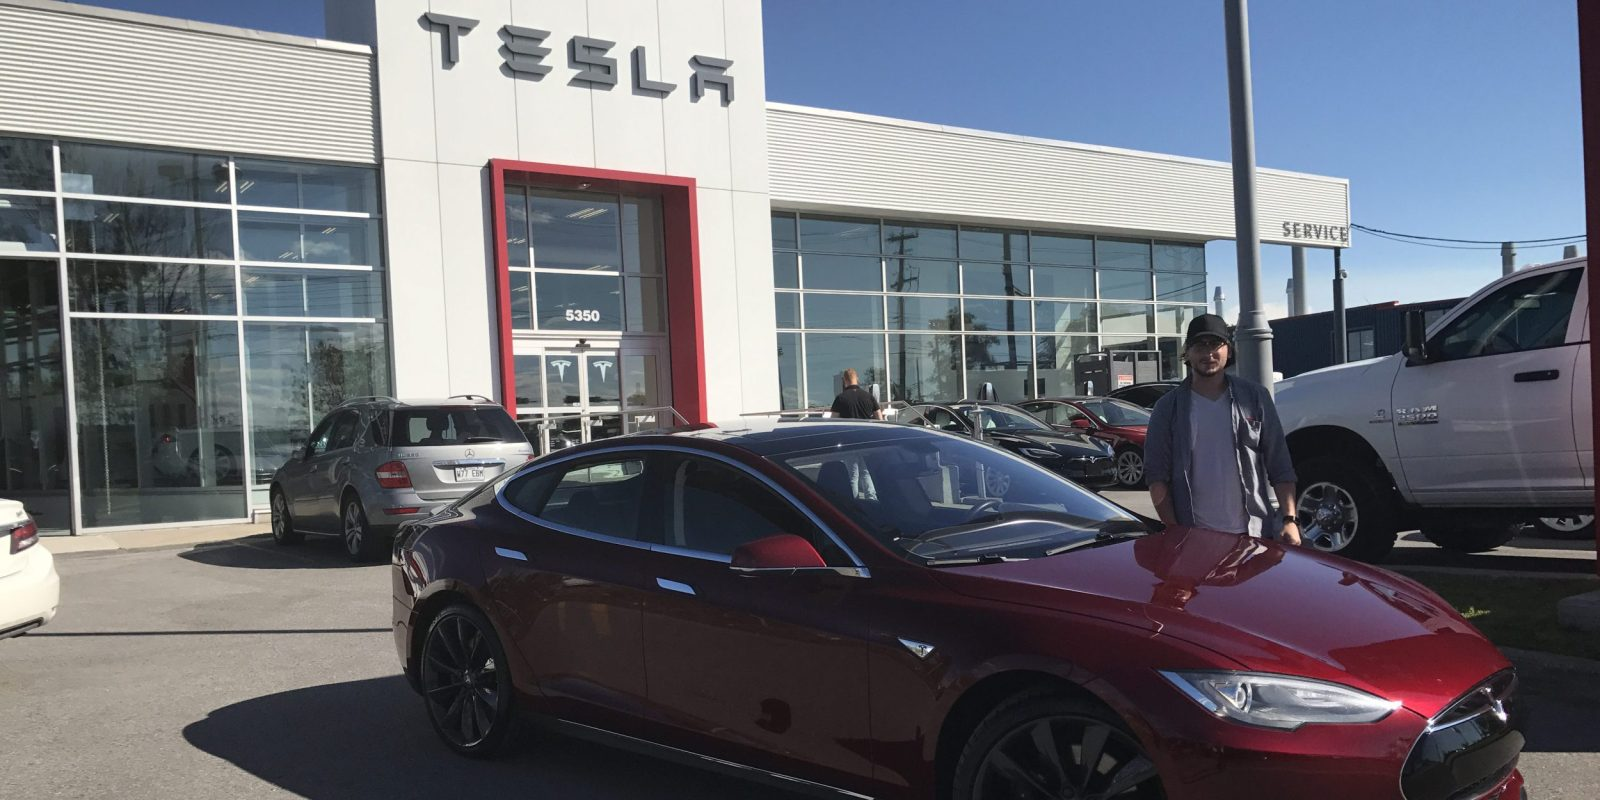 Tesla partners with car auction firms to sell more used cars, report says